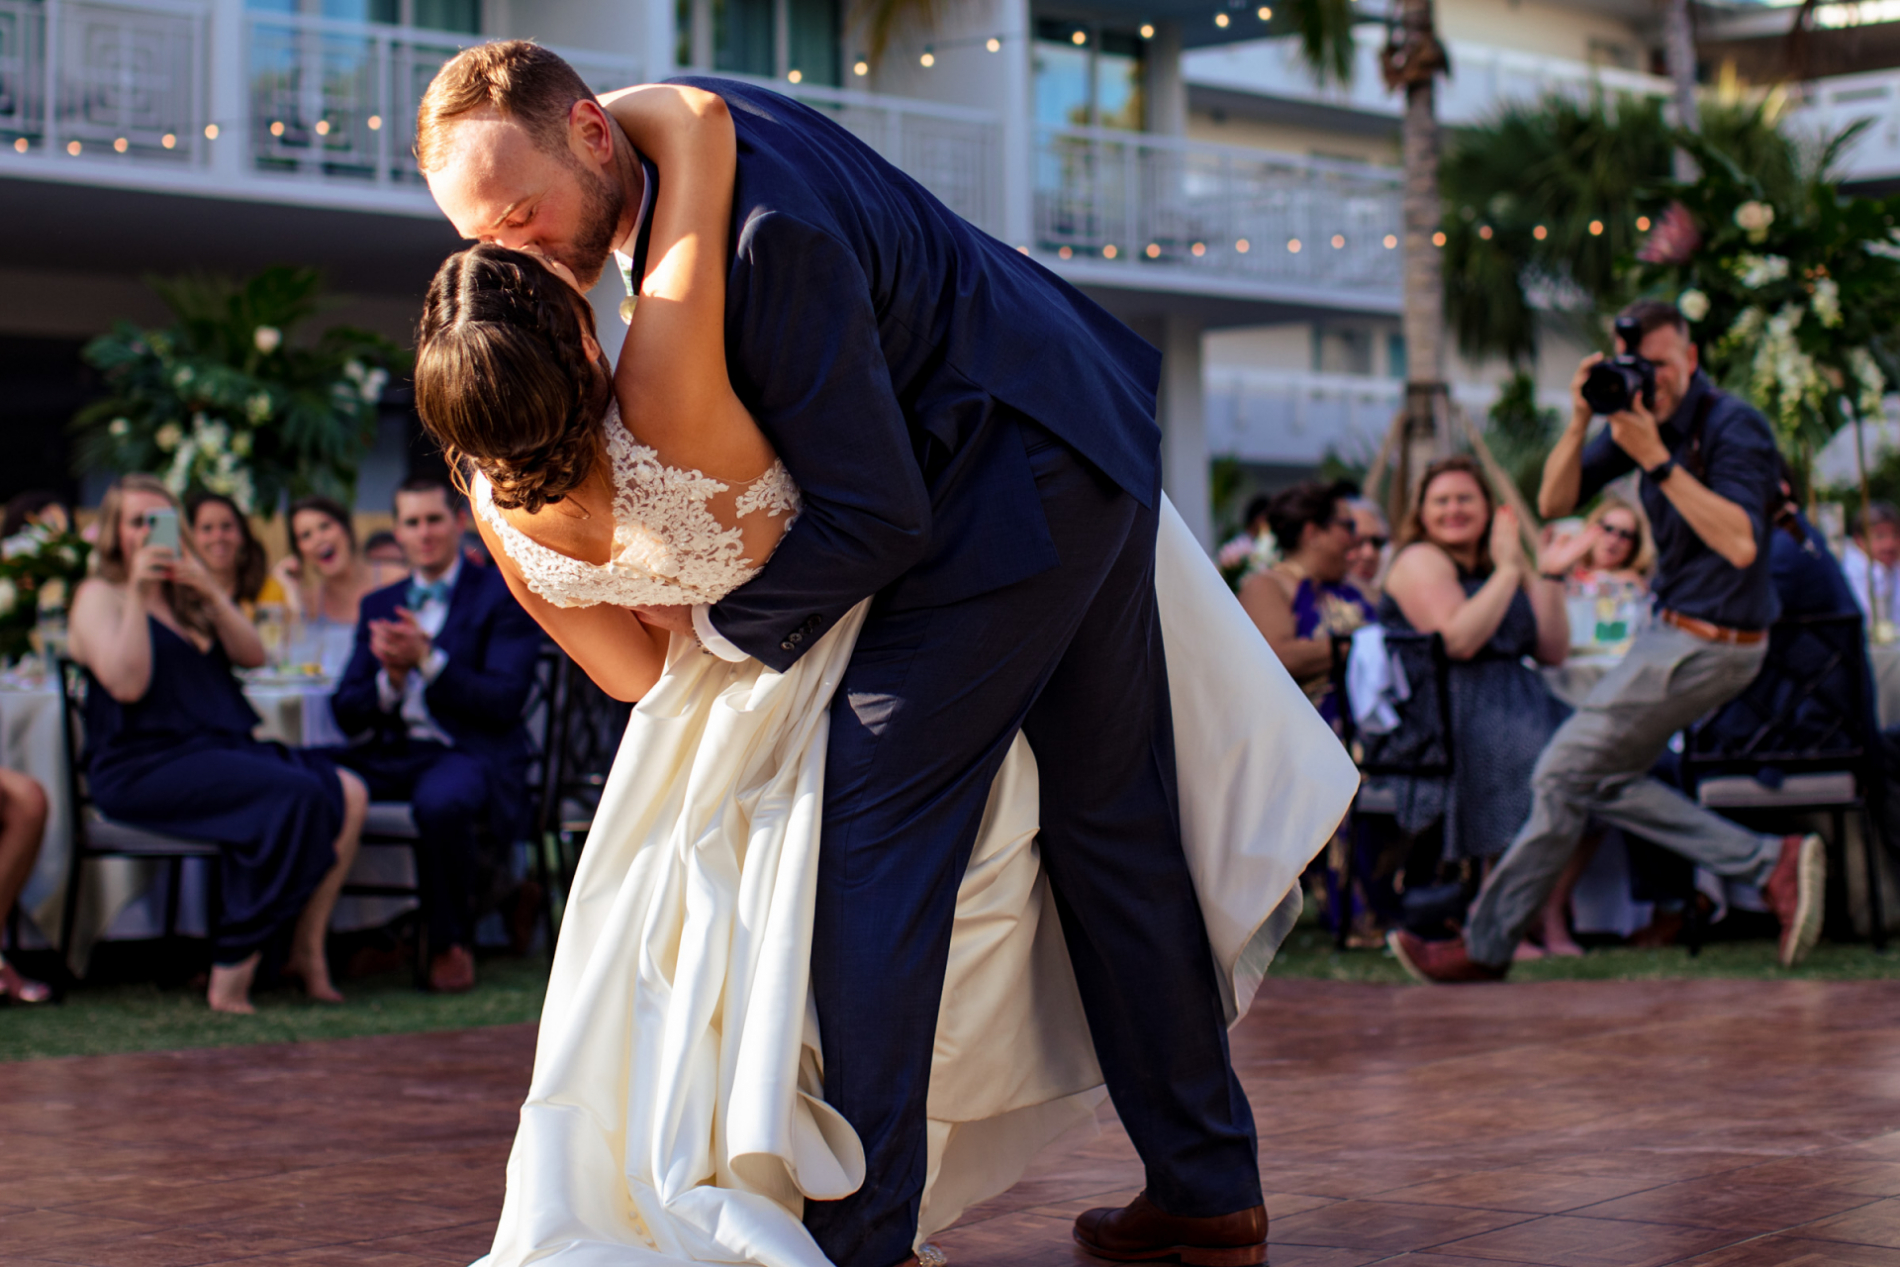 An Asheville North Carolina wedding photographer moves into place during a first dance dip kiss by the bride and groom